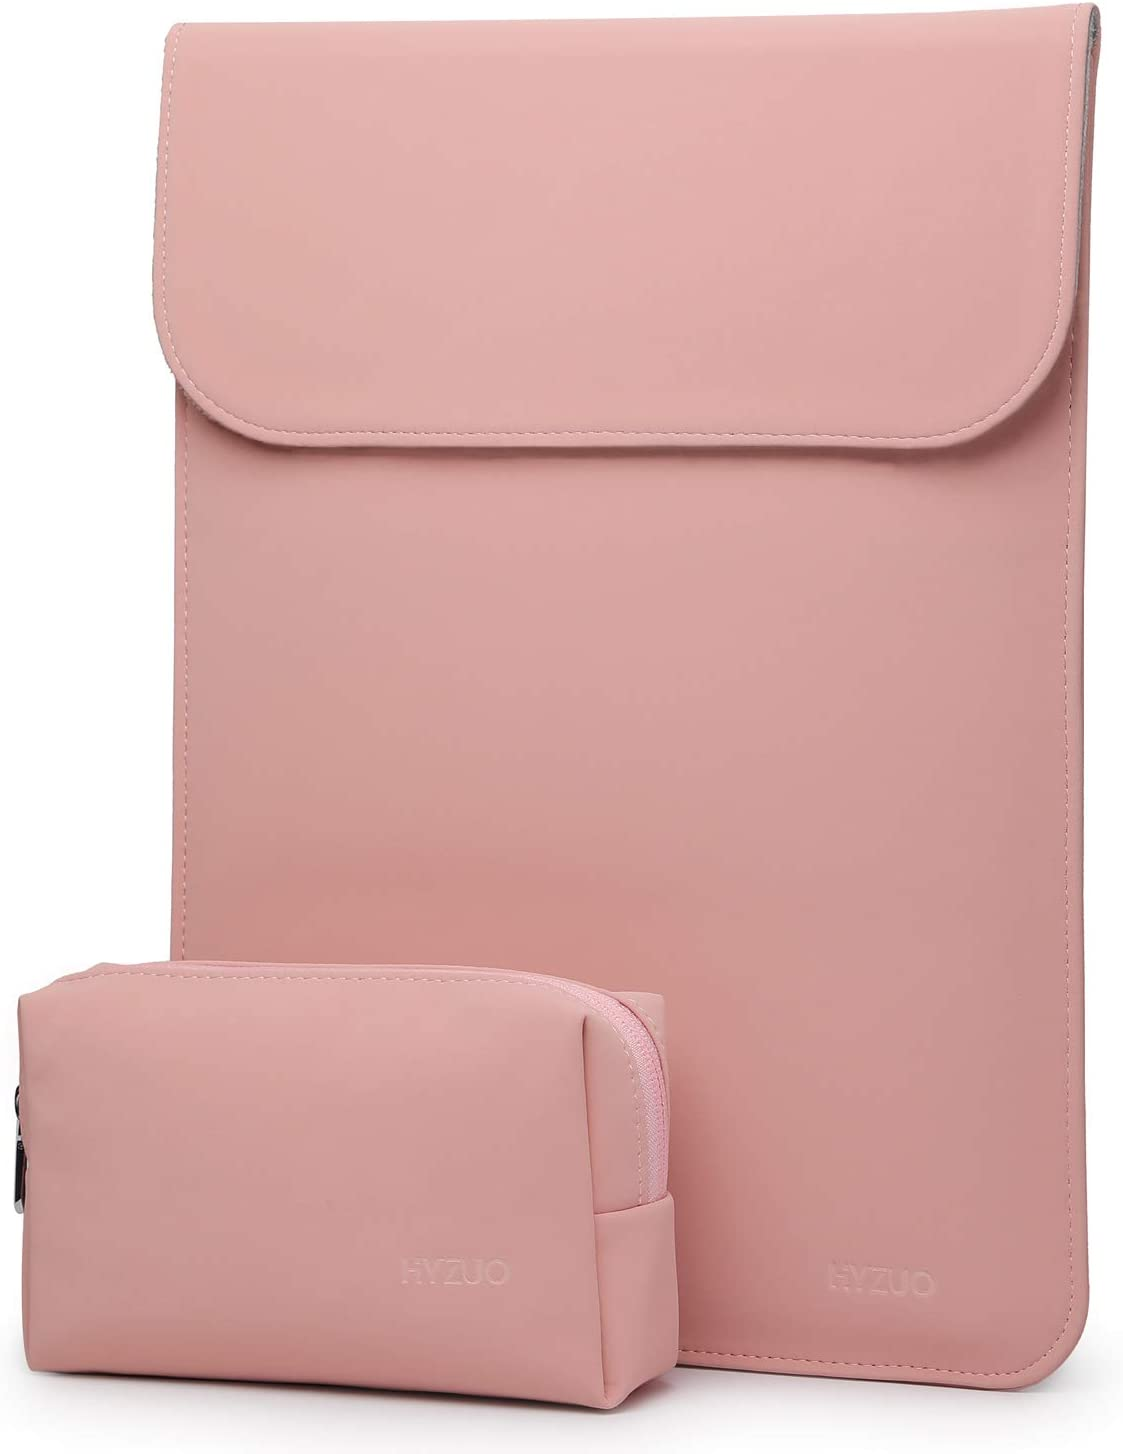 HYZUO 15-16 Inch Laptop Sleeve Case Compatible with 2019 MacBook Pro 16 A2141/ Surface Laptop 3 15 Inch/Dell XPS 15/2012-2015 Old MacBook Pro Retina 15 A1398, Pink